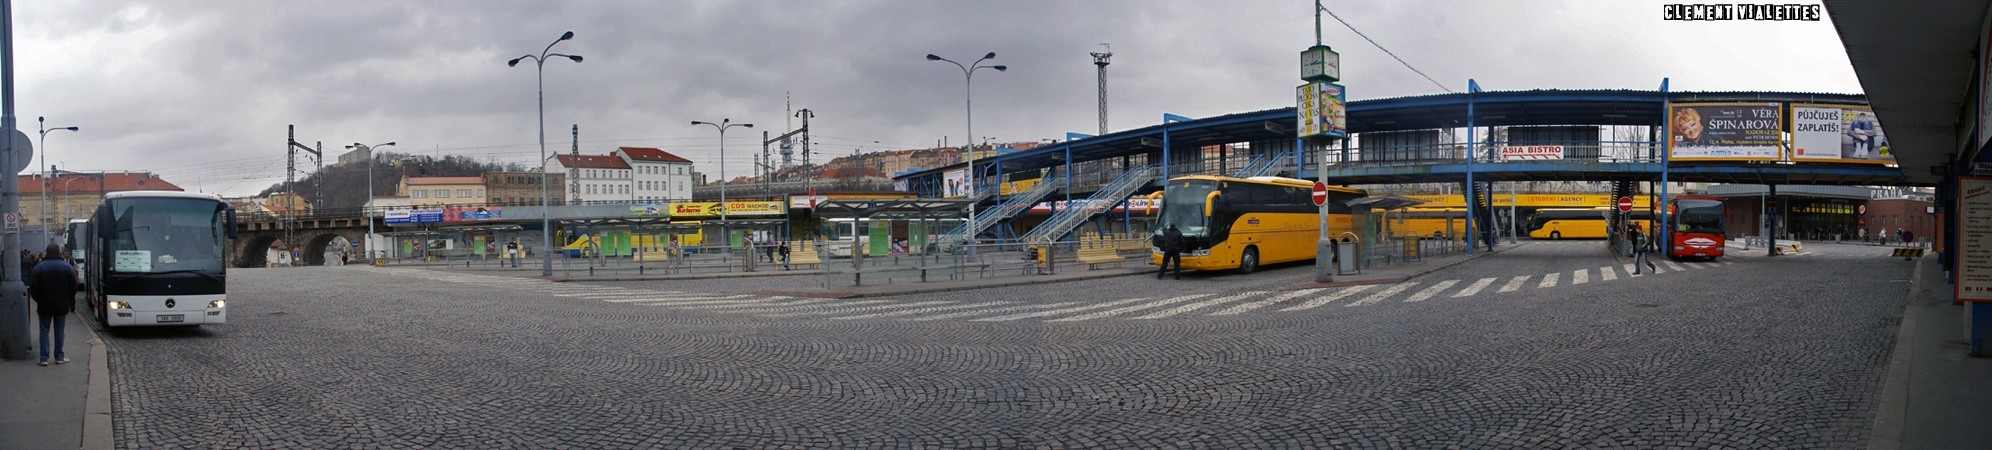 2010-03-prague-transports-gare-de-bus.jpg